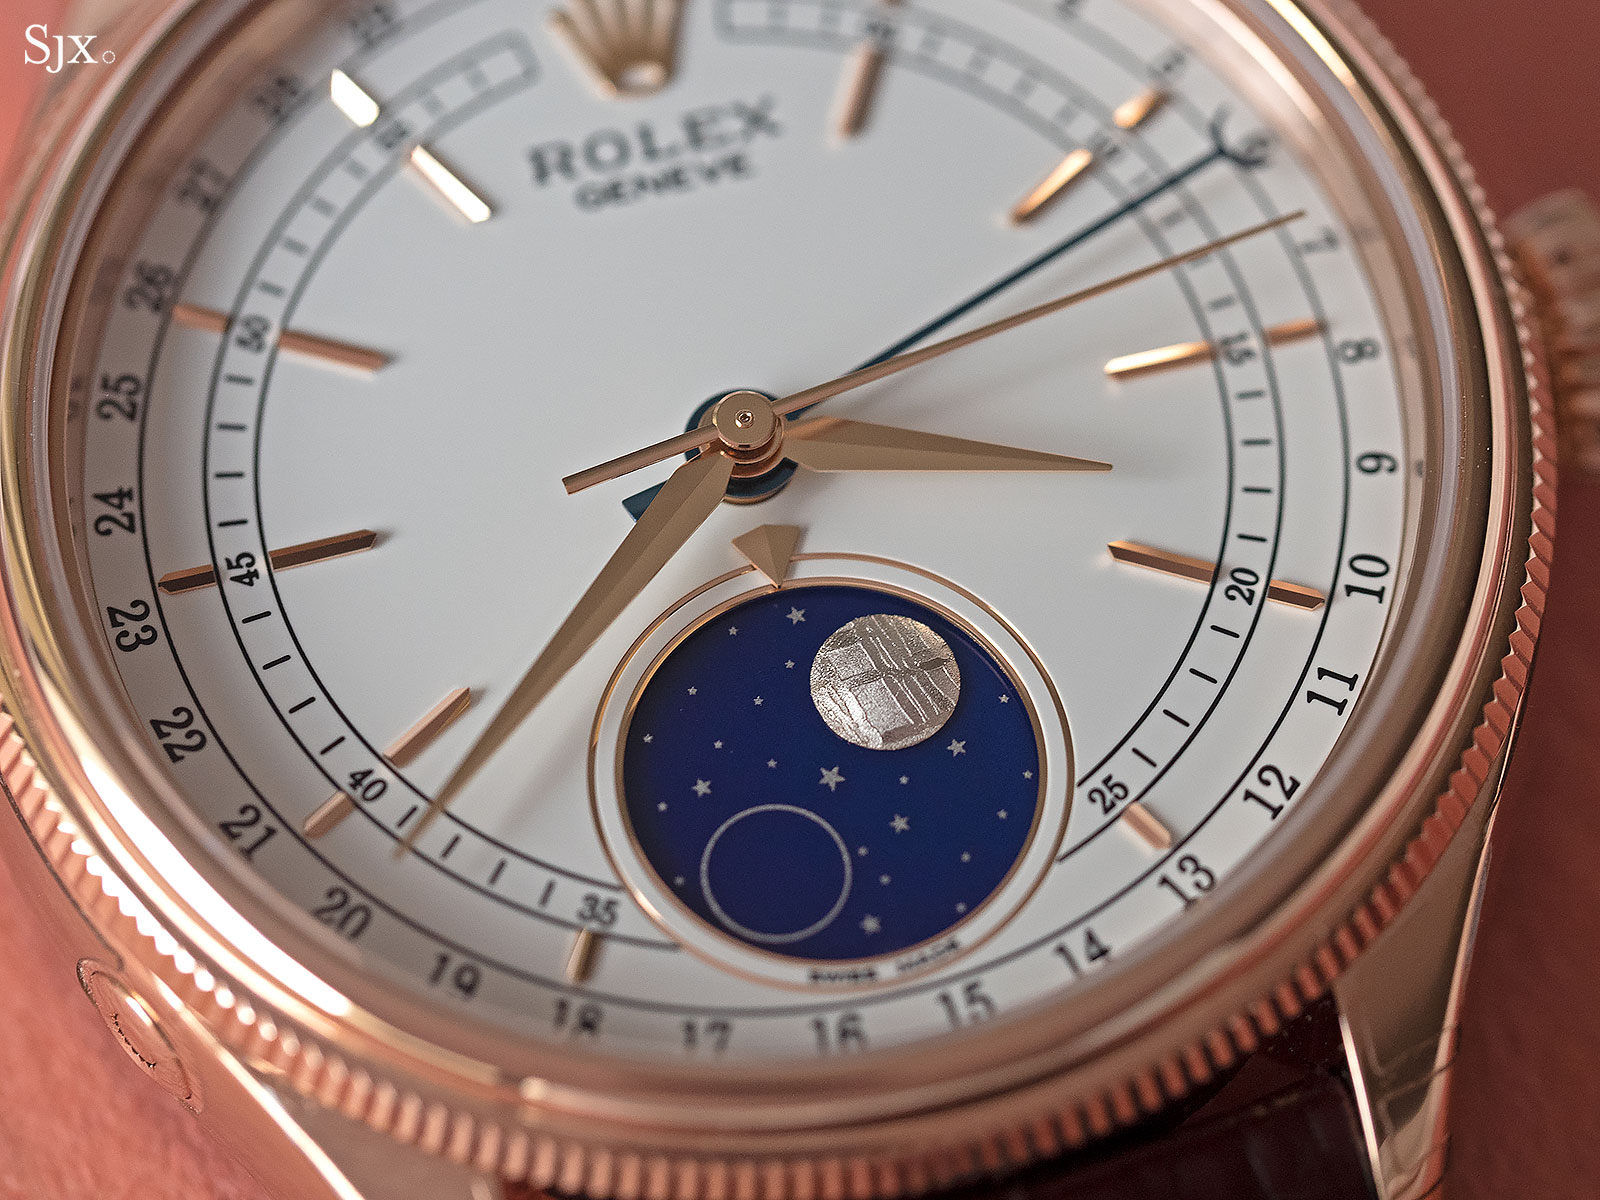 Rolex Cellini Moonphase 50535 review 11